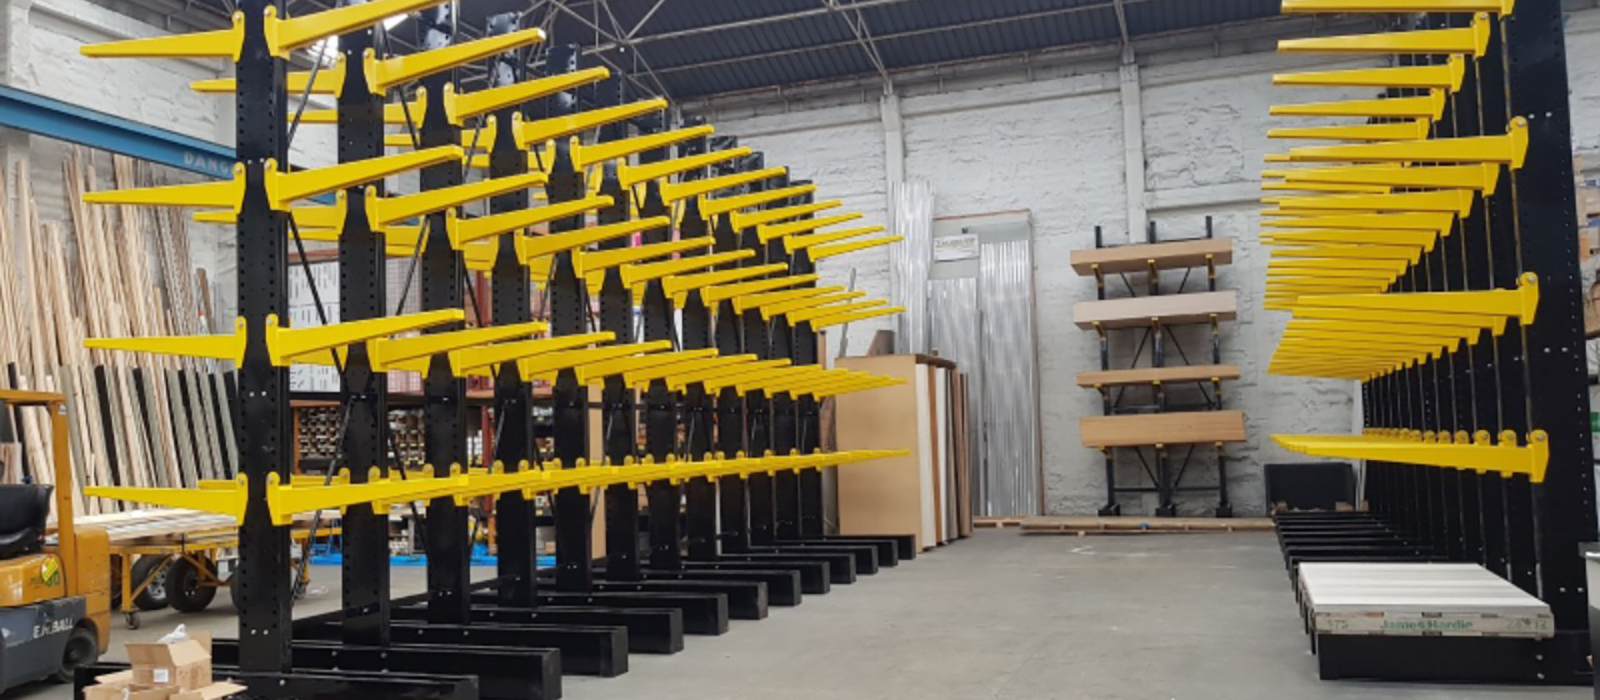 EH Ball iTM, Cantilever Racking, Pallet Racking